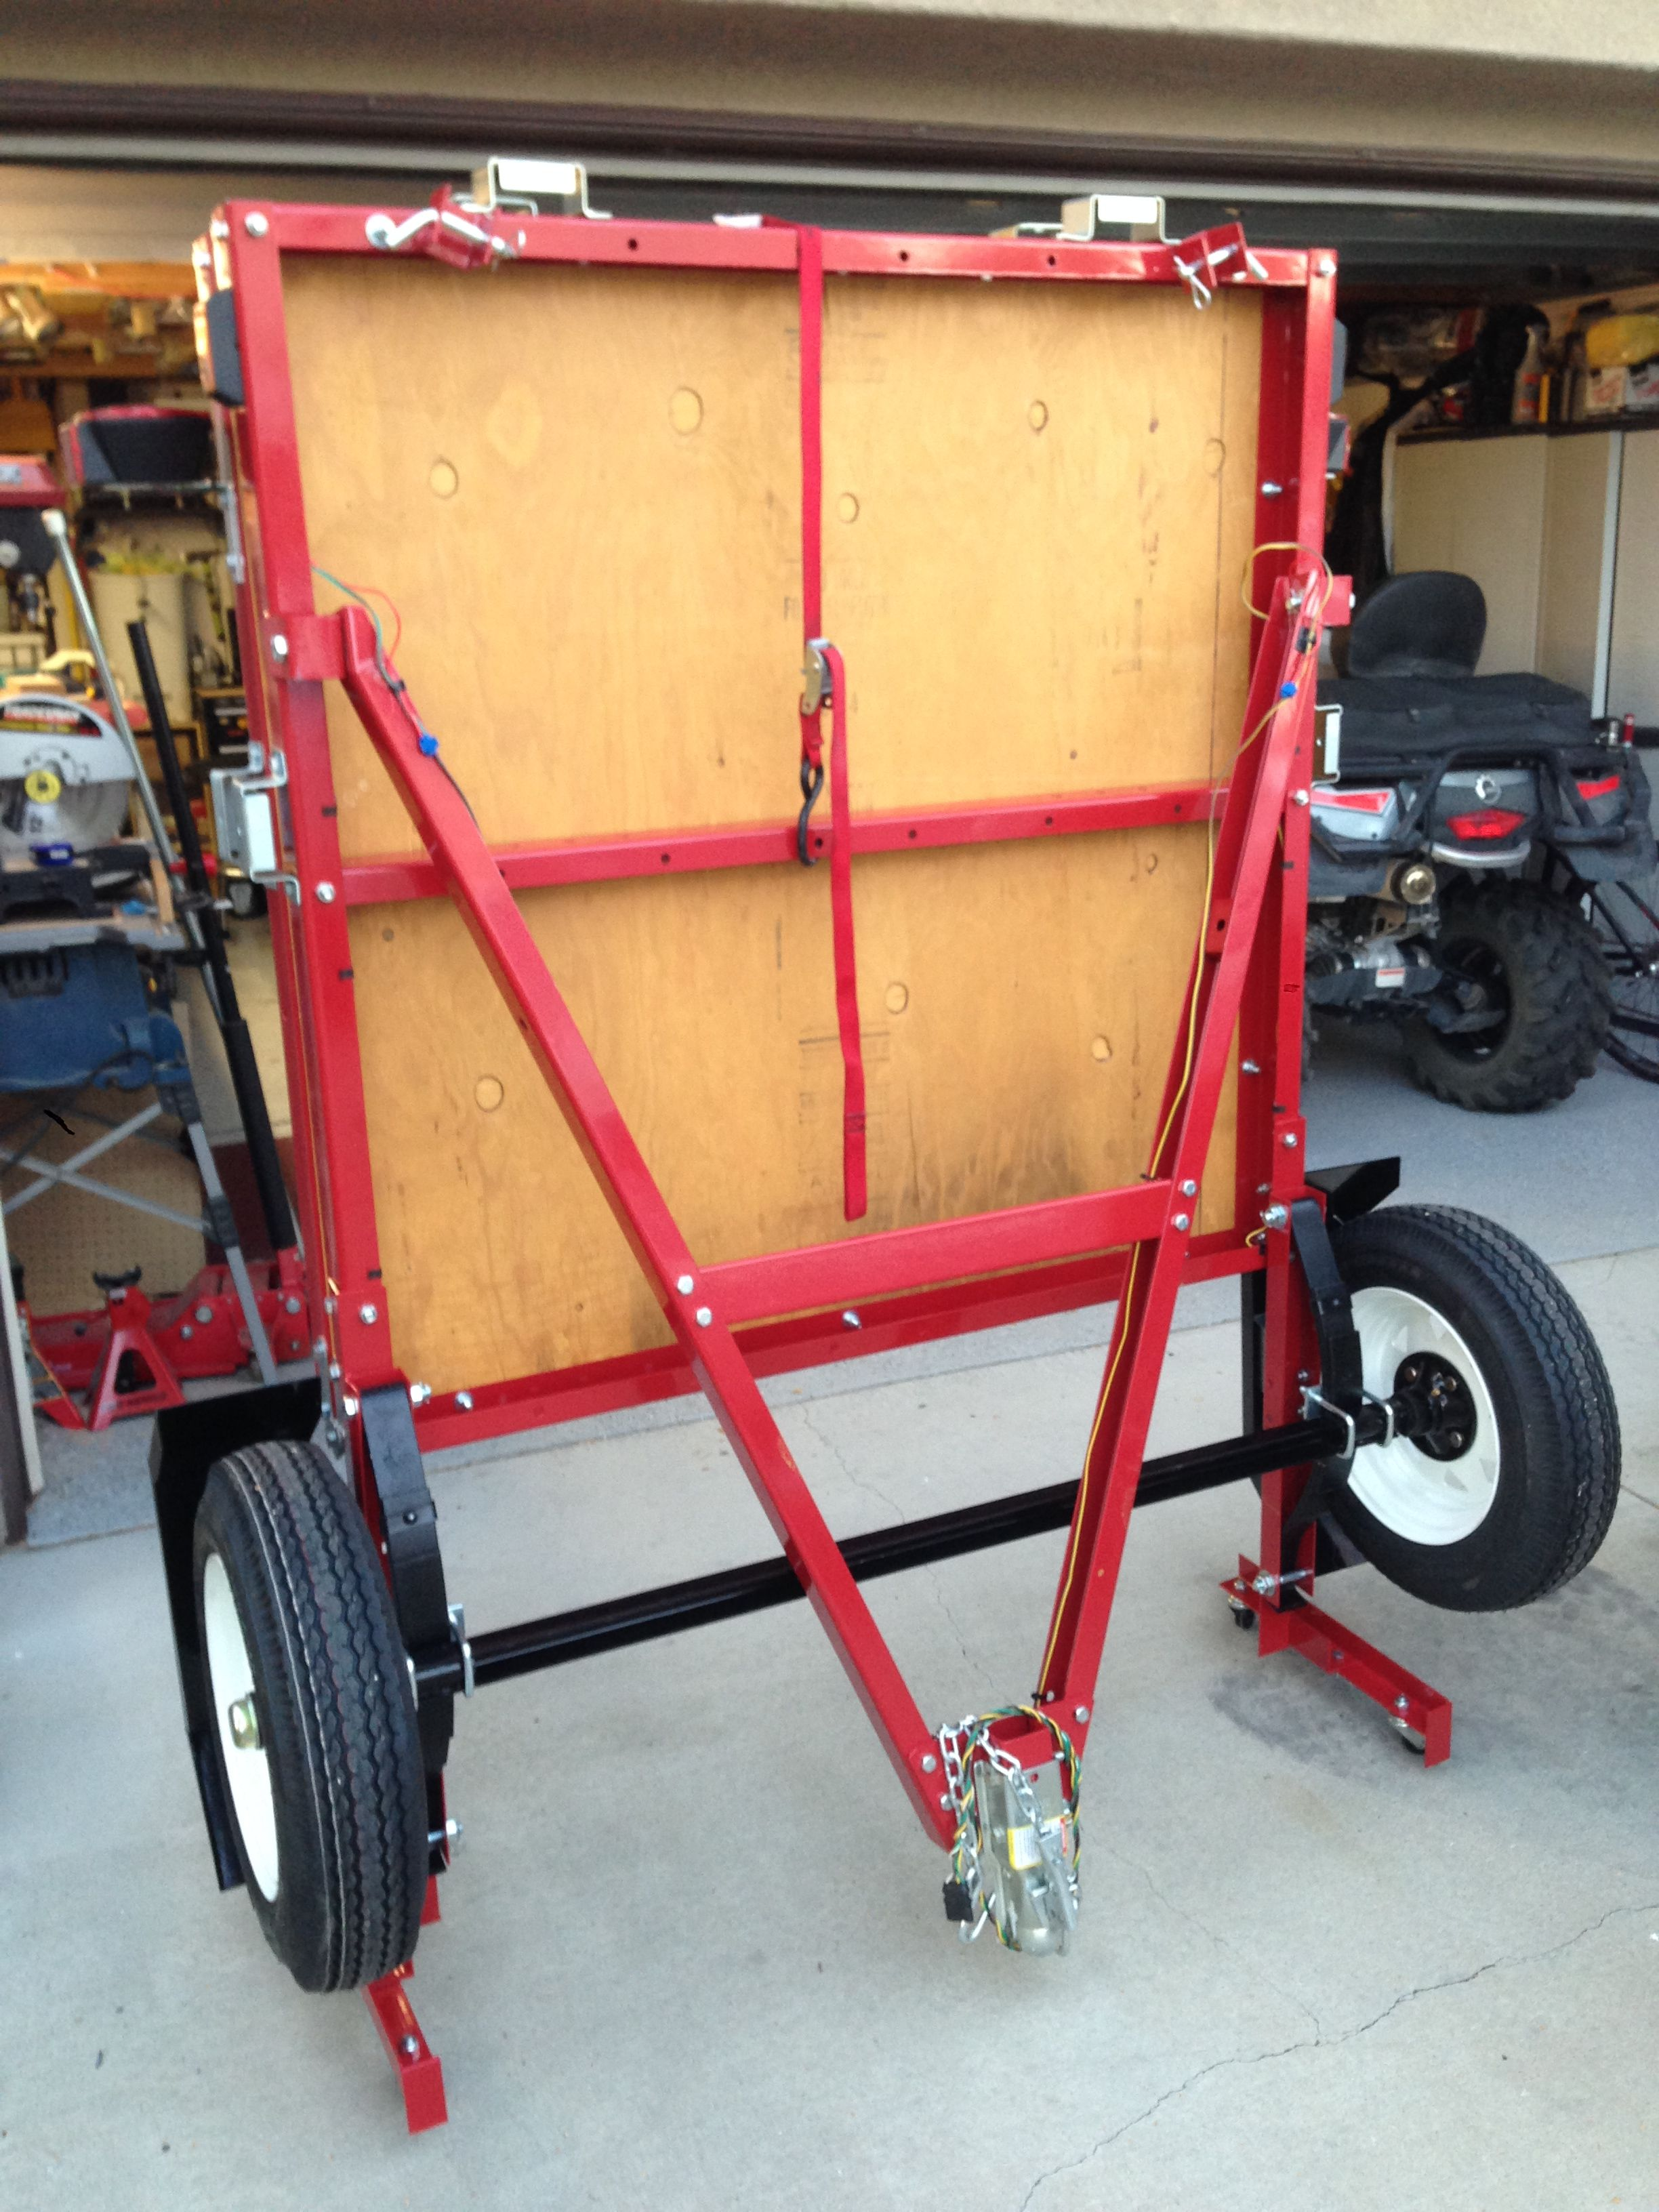 Folding Trailer In Folded Position Ready For Storage Unfold It